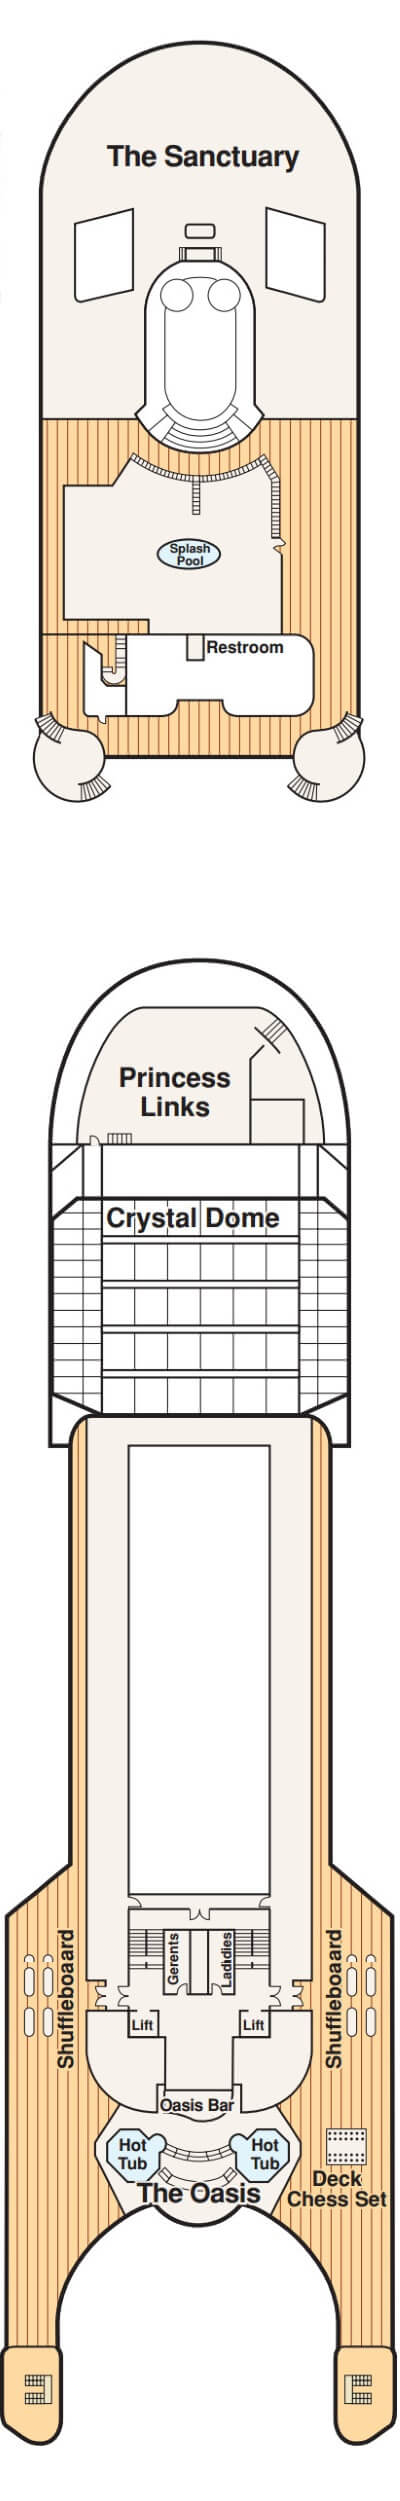 Grand Princess Sports Deck 16 layout